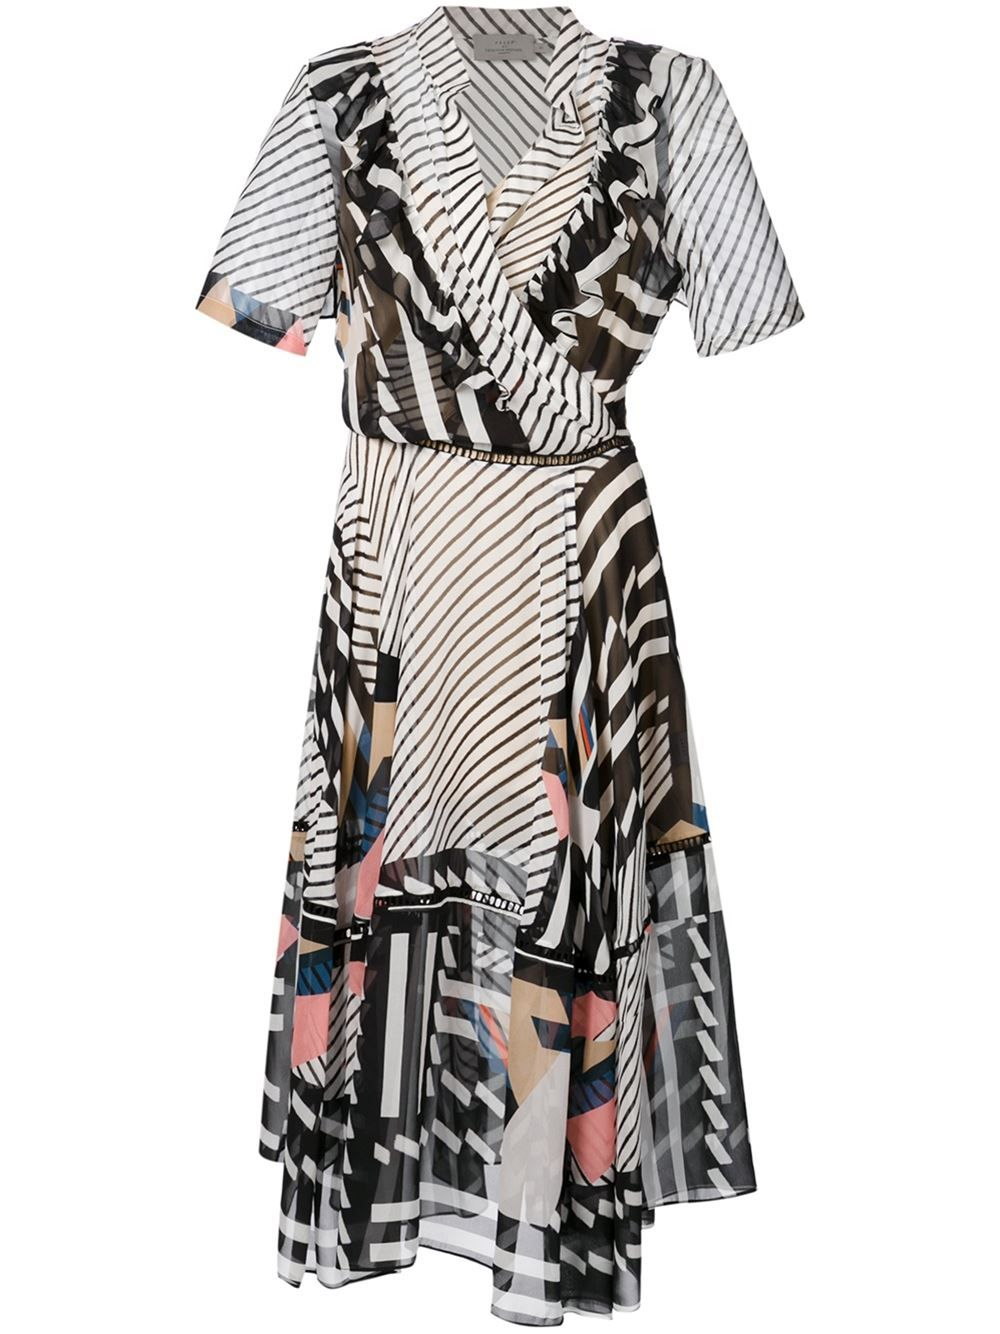 Preen By Thornton Bregazzi 'Samuel' dress